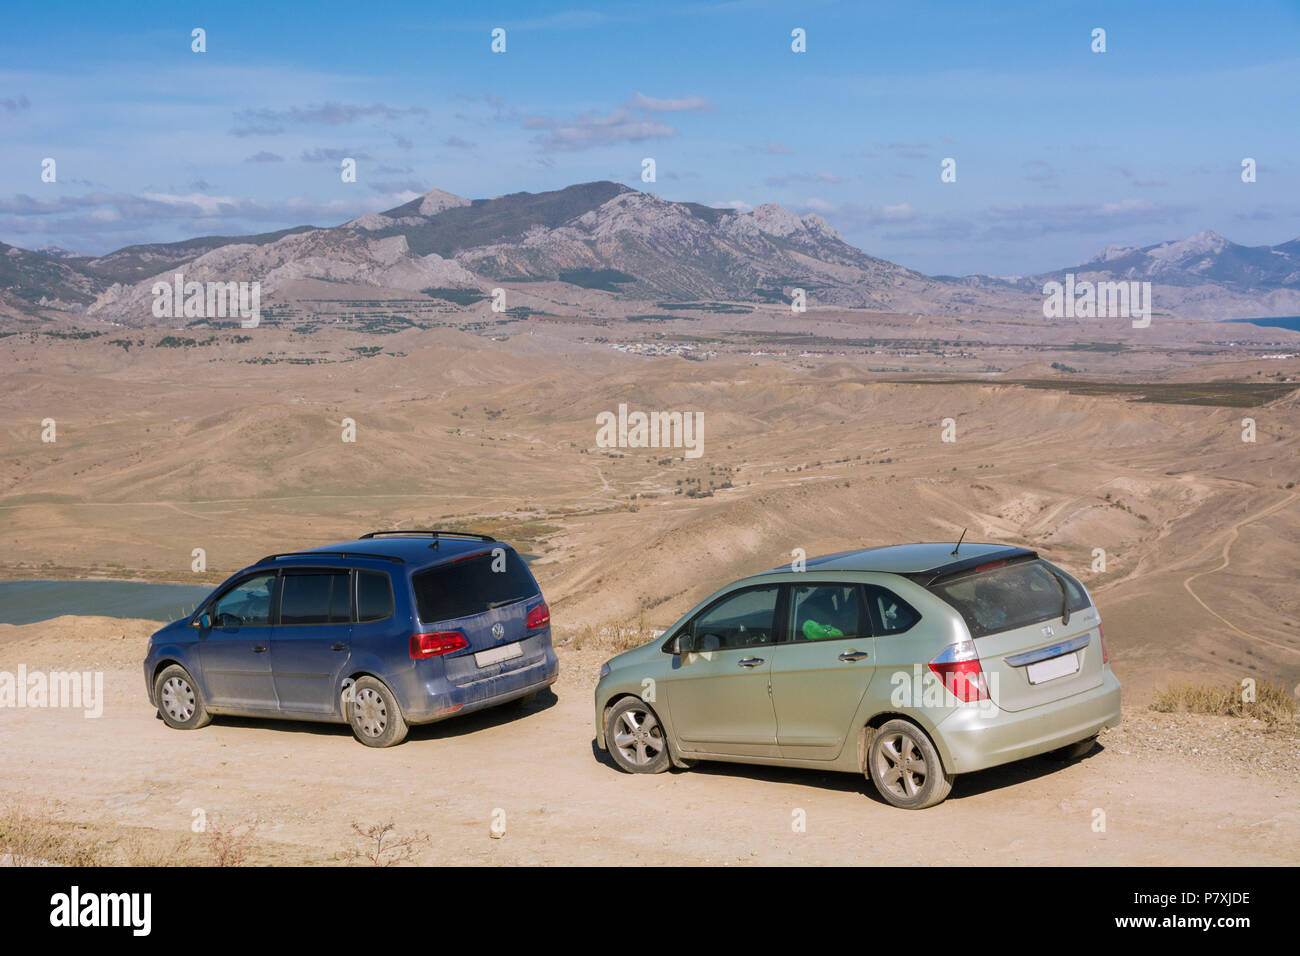 Volkswagen Sharan and Honda FR-V. The car is parked on a mountain Meganom near wind turbines. Republic of Crimea. October 30, 2015. - Stock Image